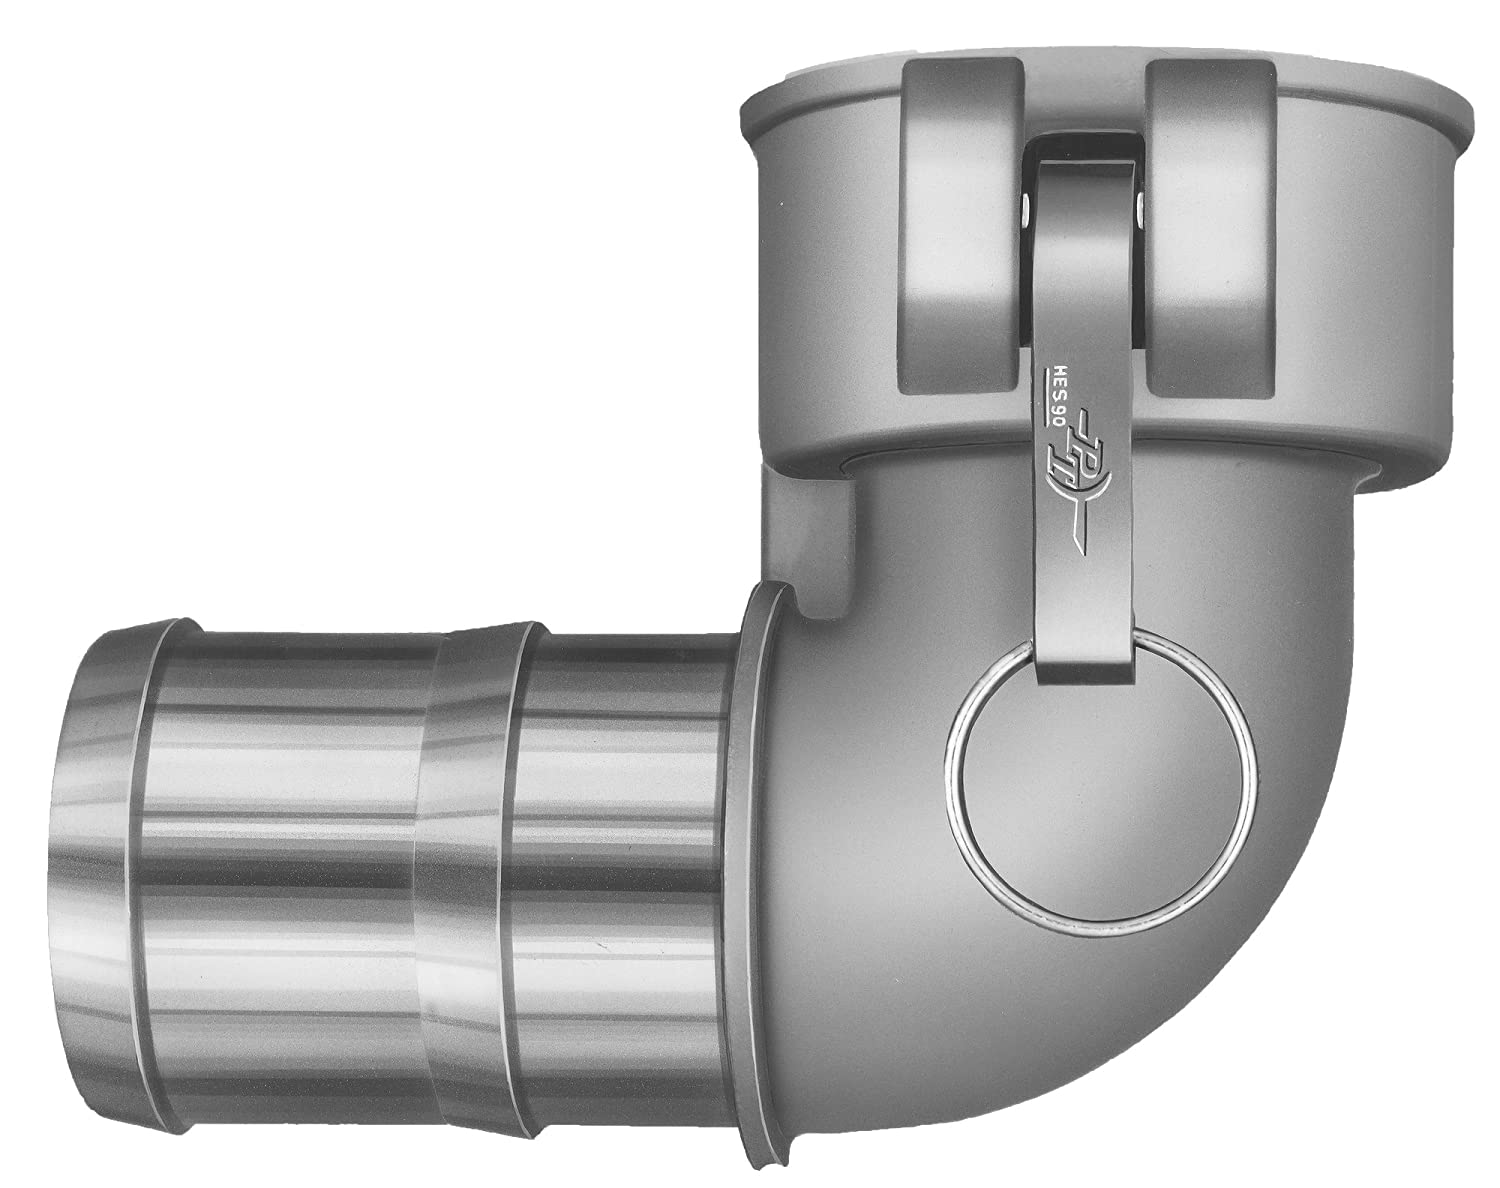 2 Coupler x Hose Shank Cam Arms 90 Degree Elbow HBS Stainless Steel 300 PT Coupling CL Series 20CL Aluminum Cam and Groove Hose Fitting